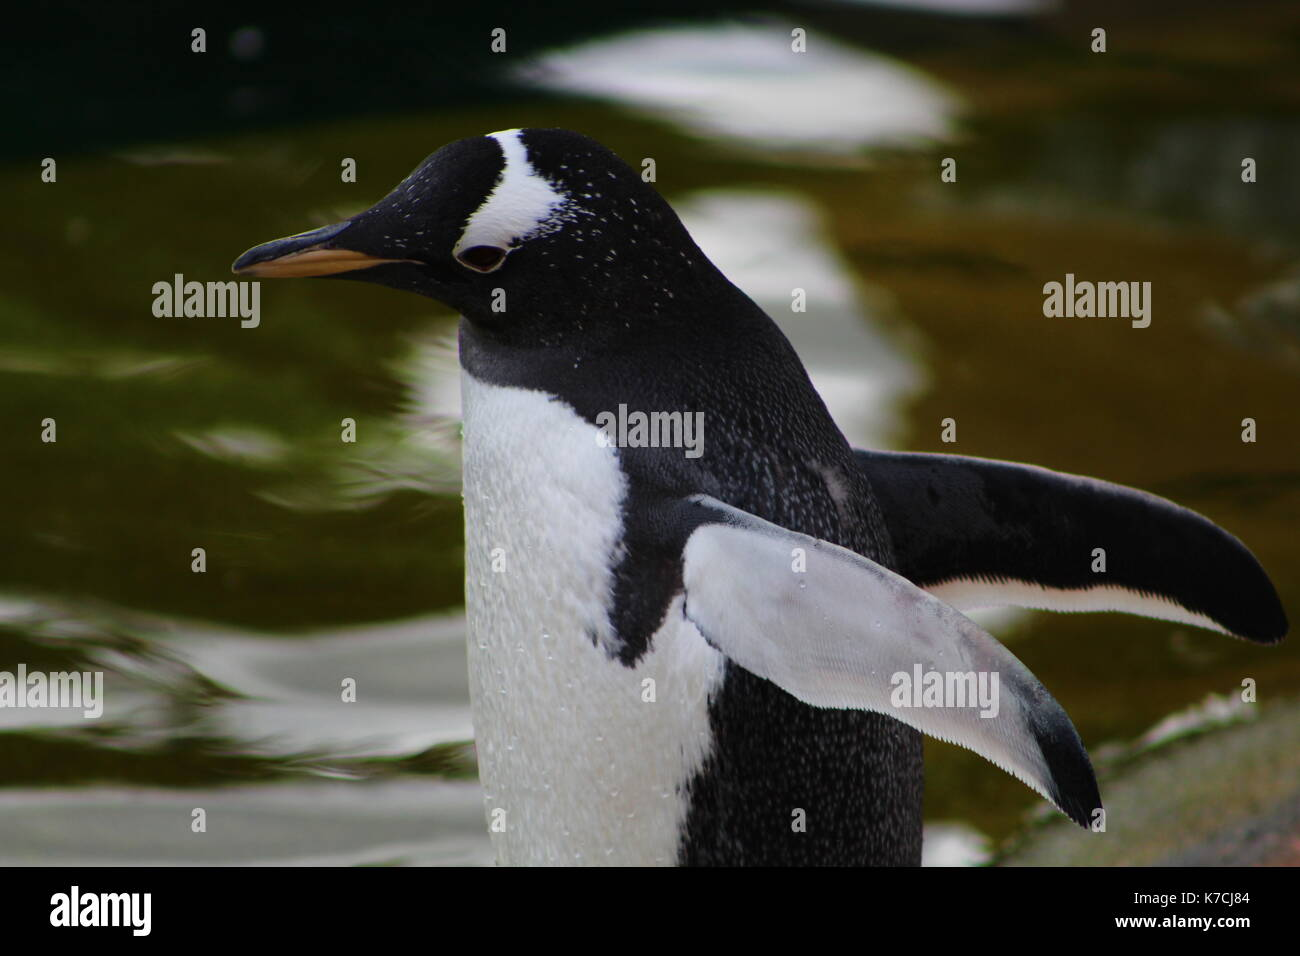 Gentoo penguin spreading wings - Stock Image